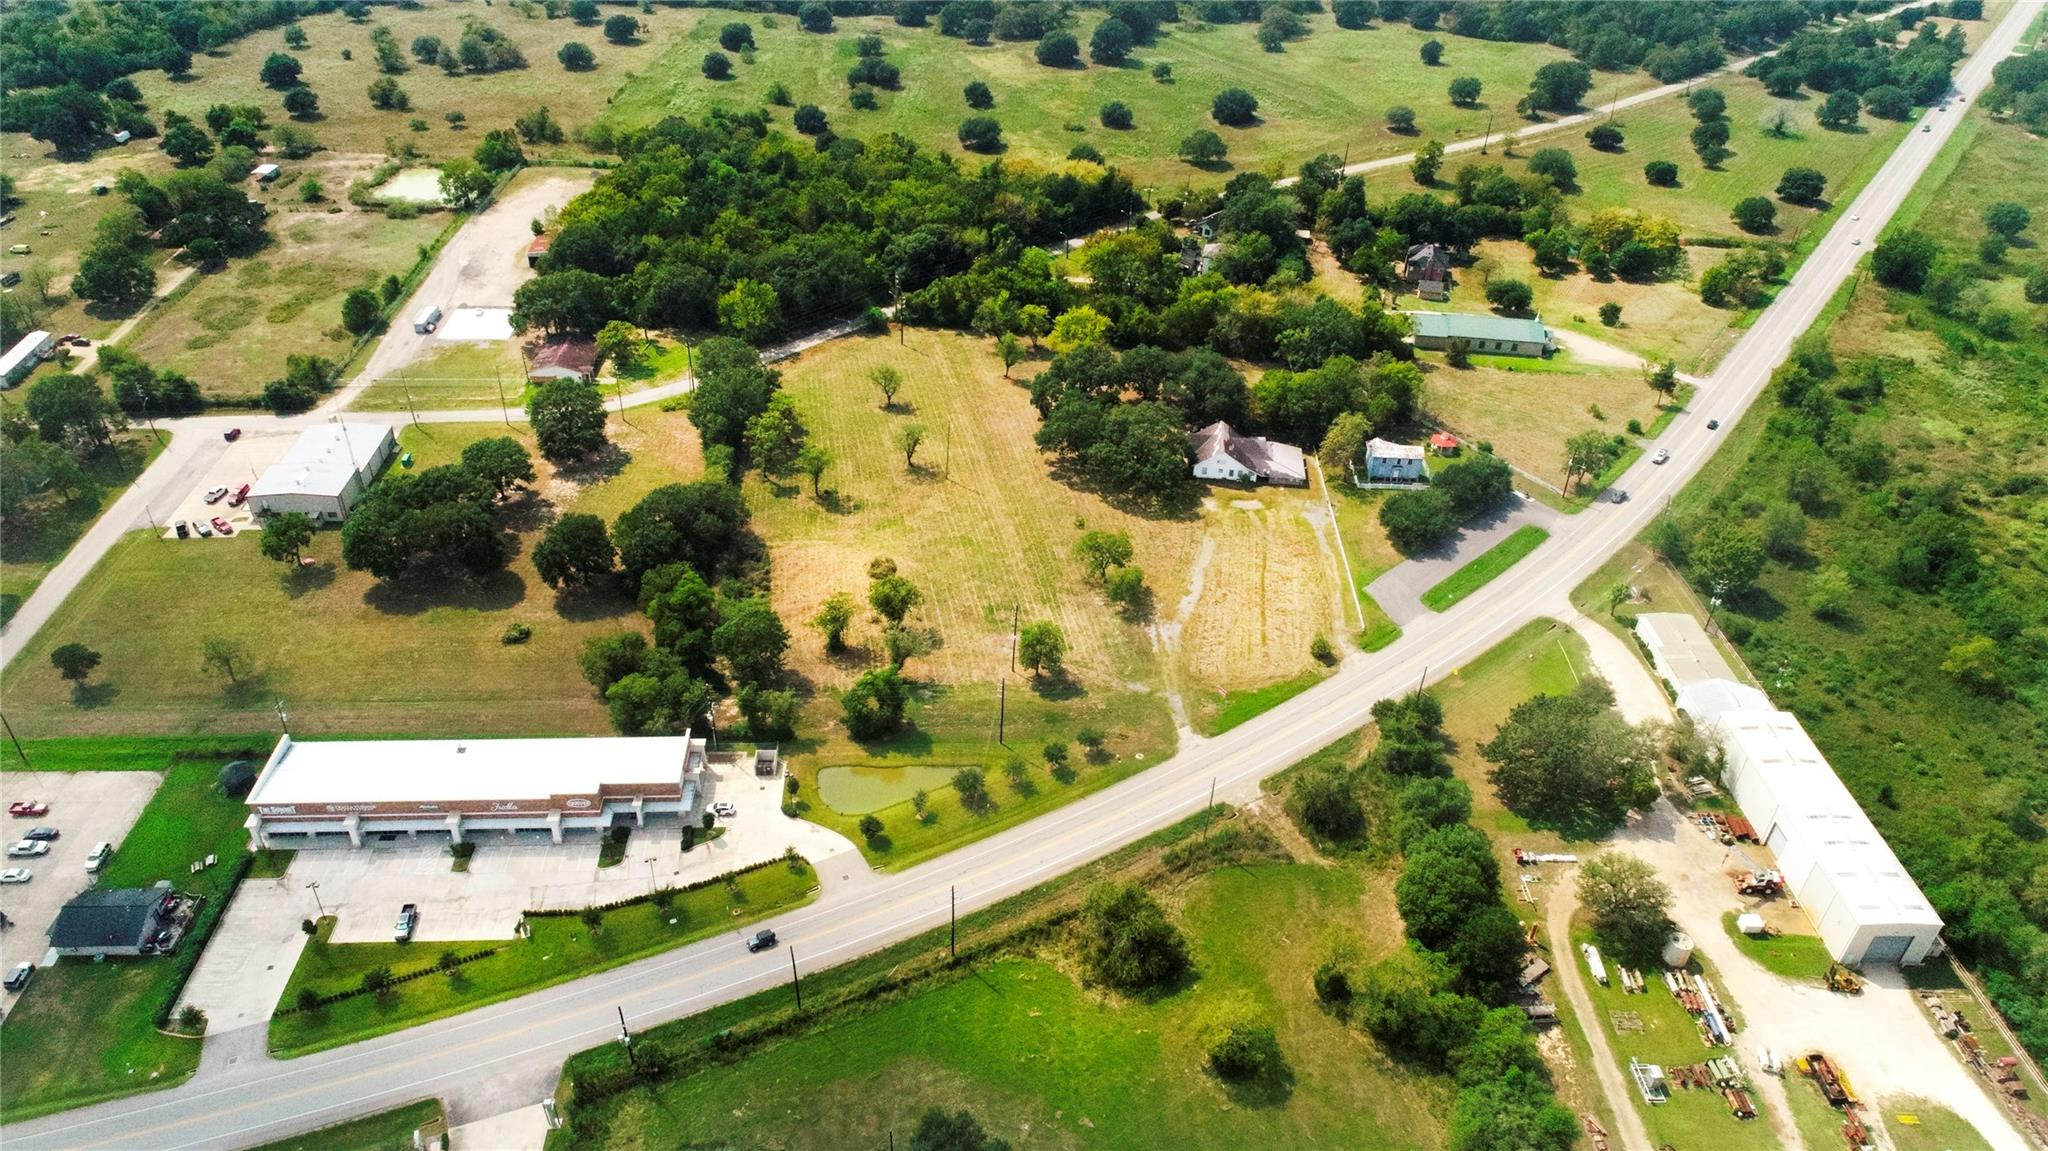 7926-1 FM 359 Road S Property Photo - Fulshear, TX real estate listing